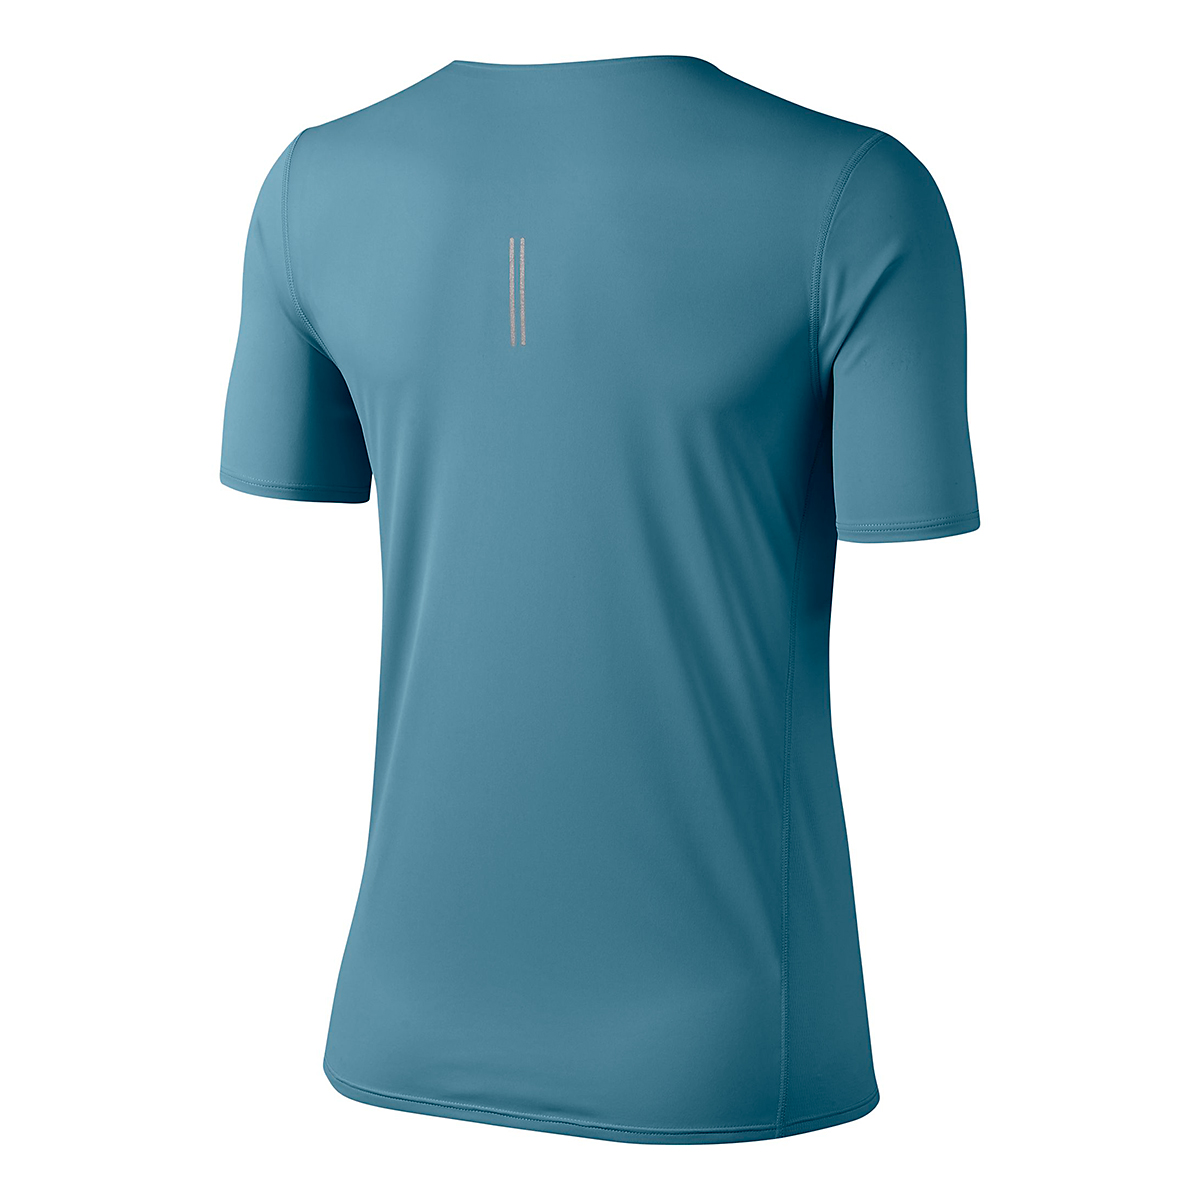 Women's Nike City Sleek Short Sleeve Top - Color: Cerulean/Reflective Silver - Size: XS, Cerulean/Reflective Silver, large, image 3